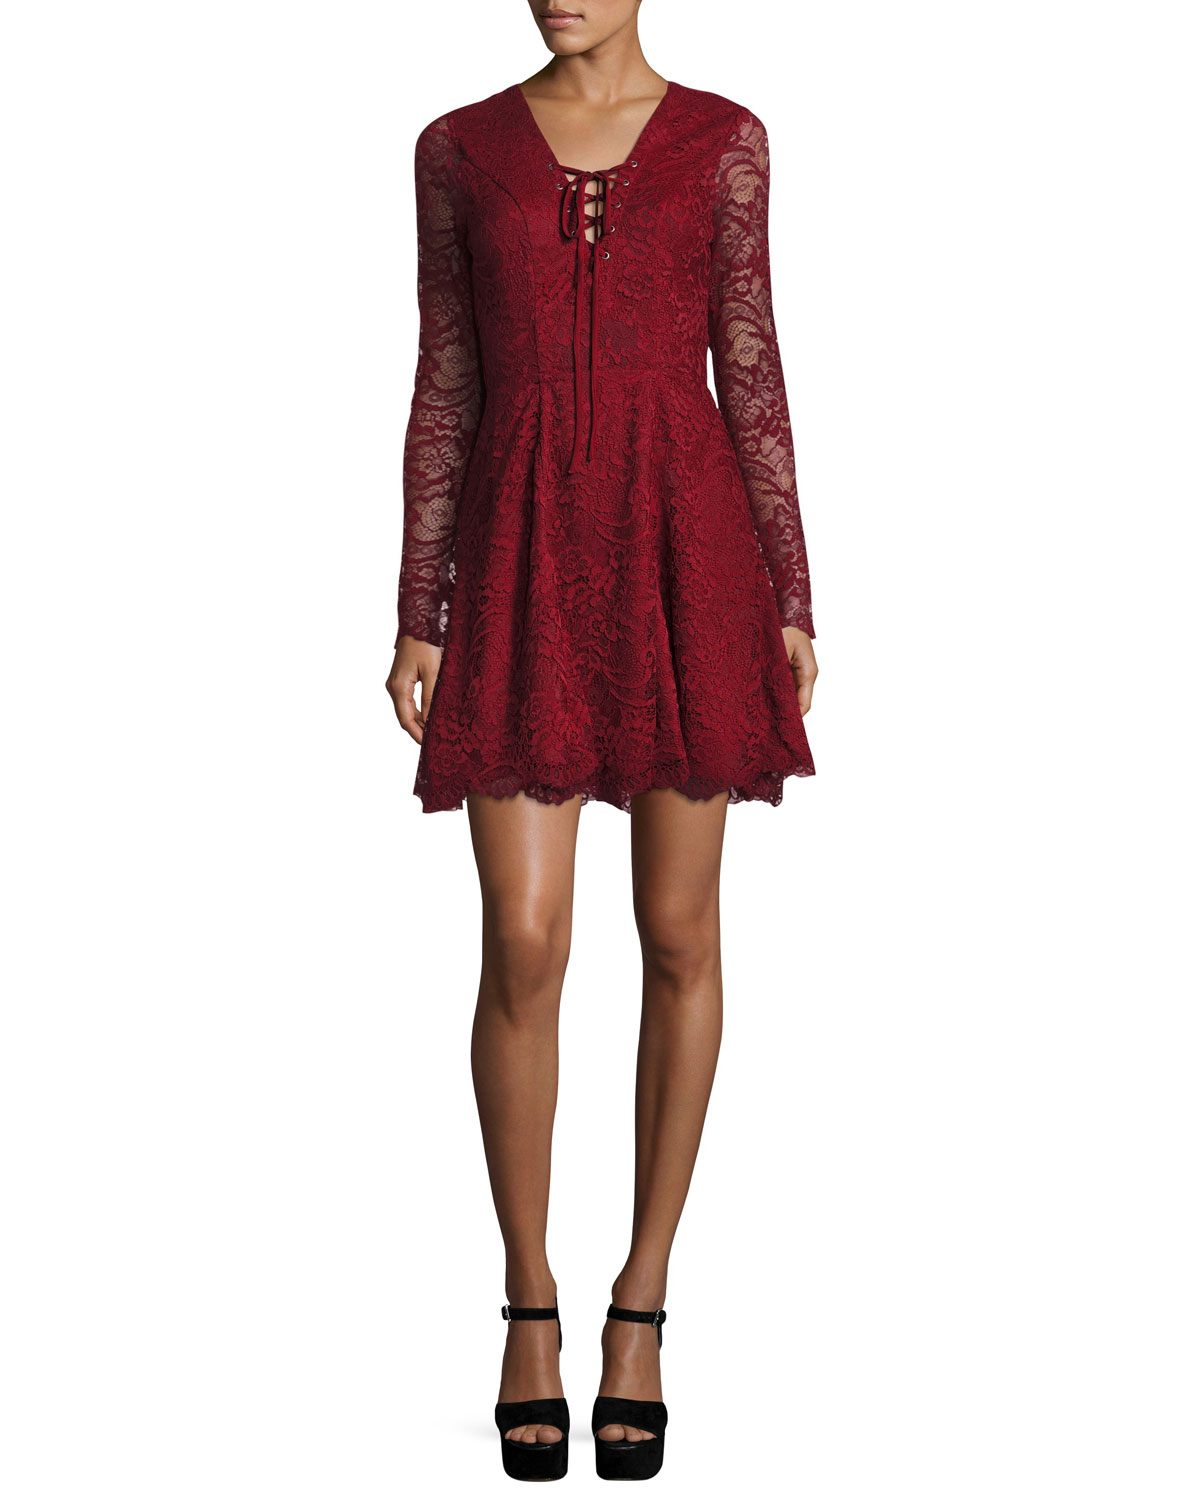 f21eee3a Lovers And Friends Mercury Lace-Up Fit & Flare Dress, Cranberry ...